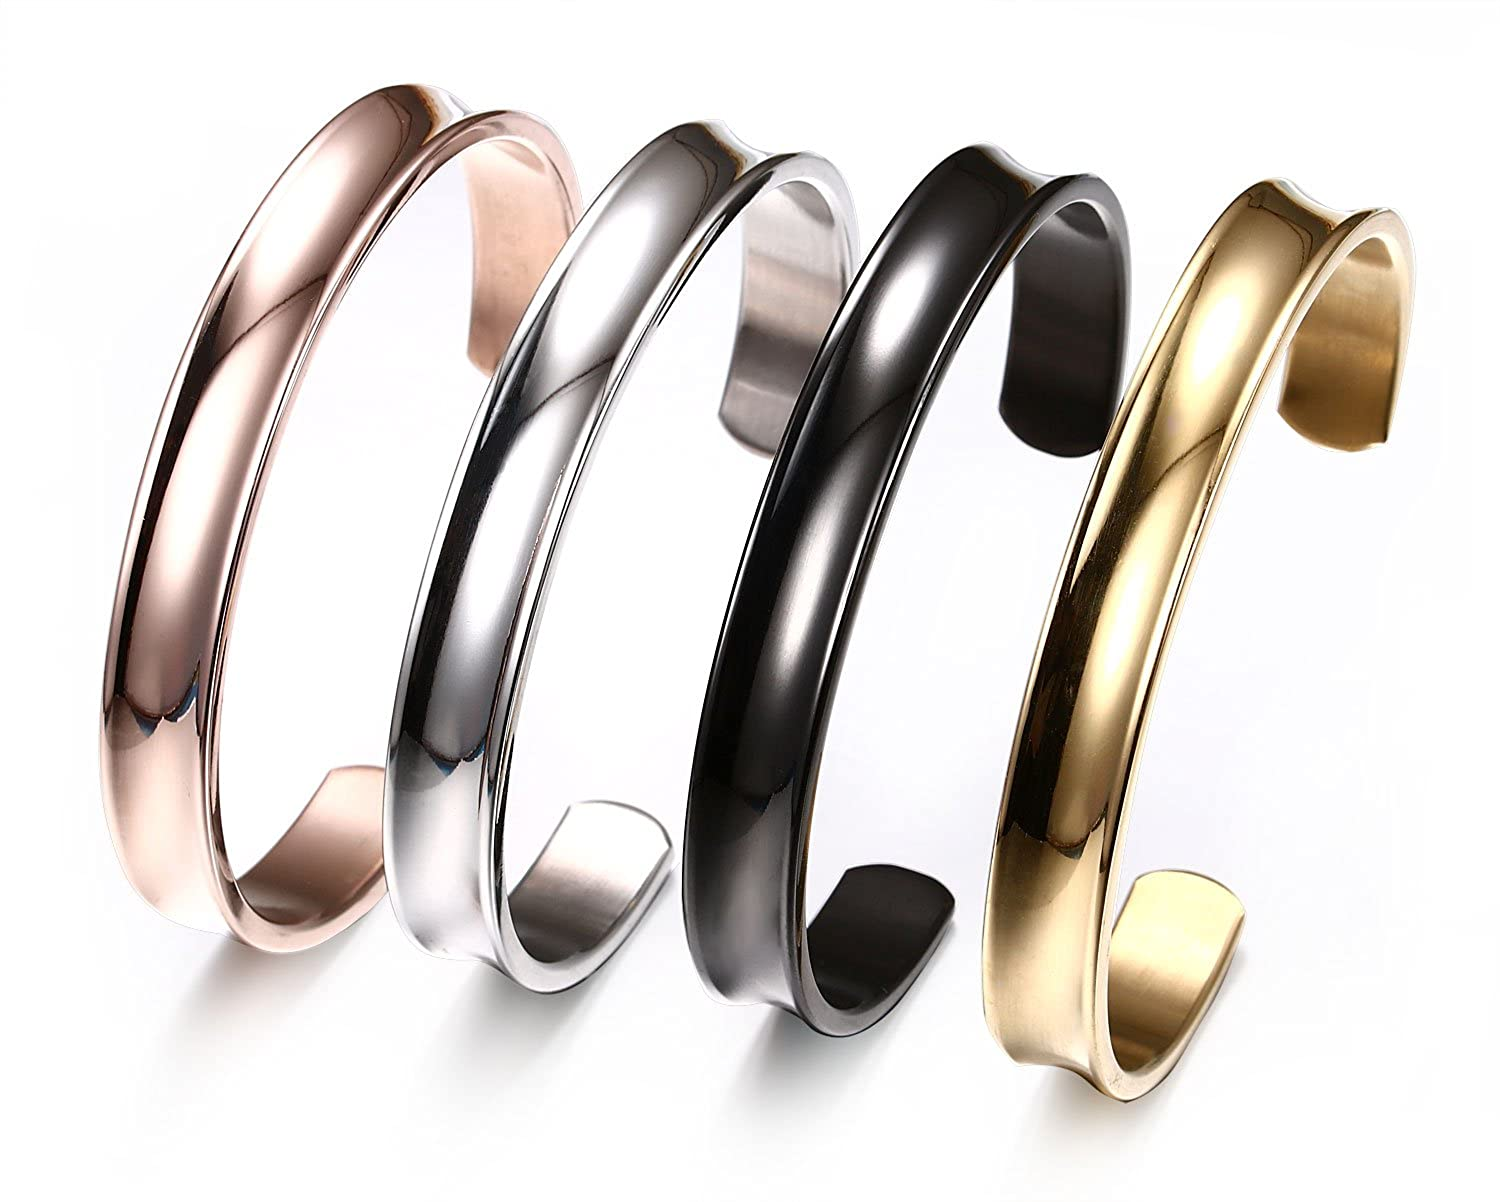 BBX 7MM 316L Stainless Steel Hairband with Grooved Hair Tie Bangle Bracelets for Women Grils,Set of 4PCS